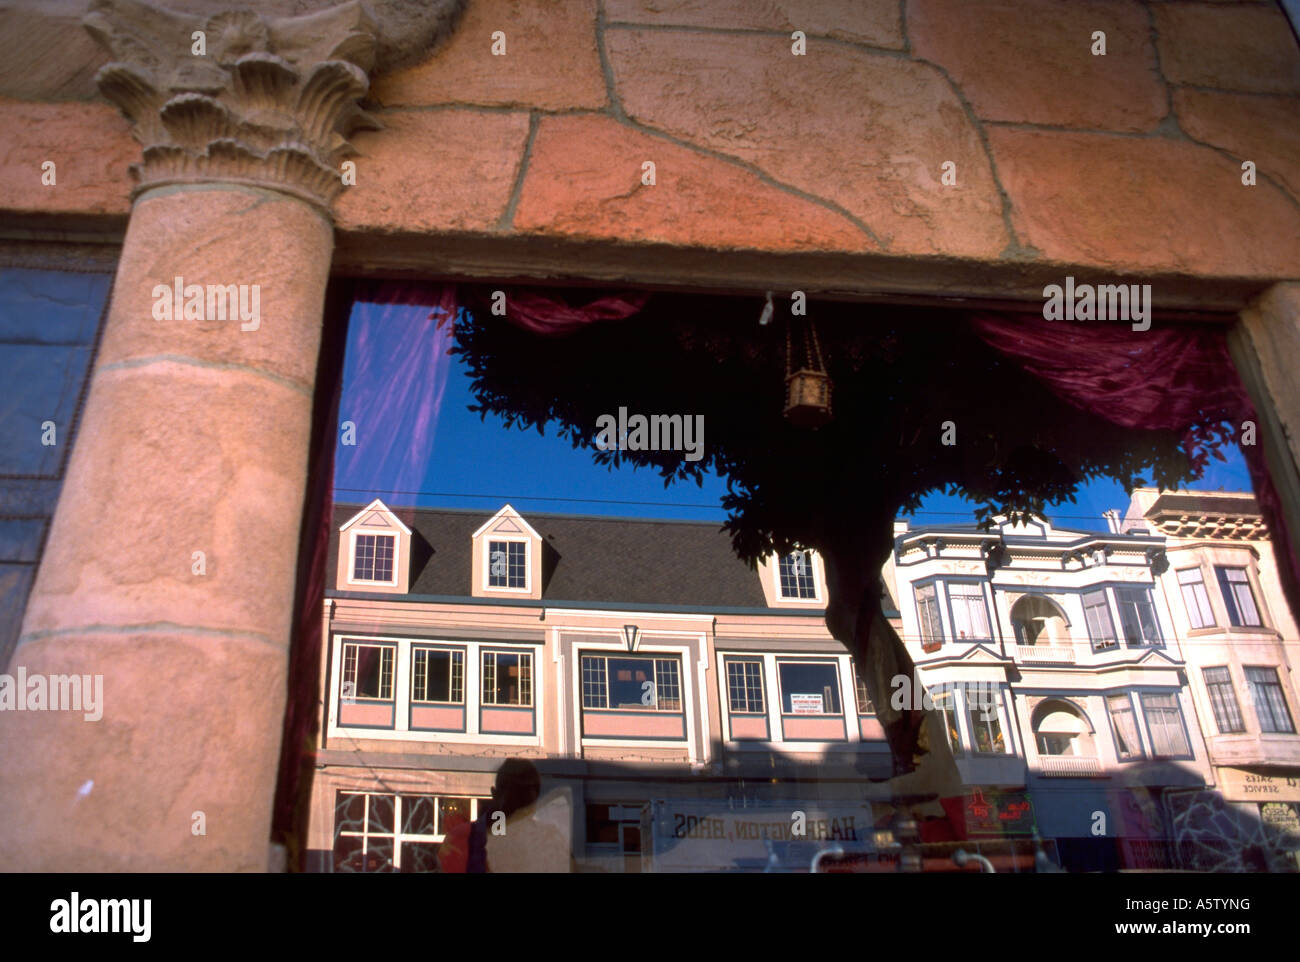 Painet hl1601 reflexion victorian architecture houses san francisco ca mission - Stock Image